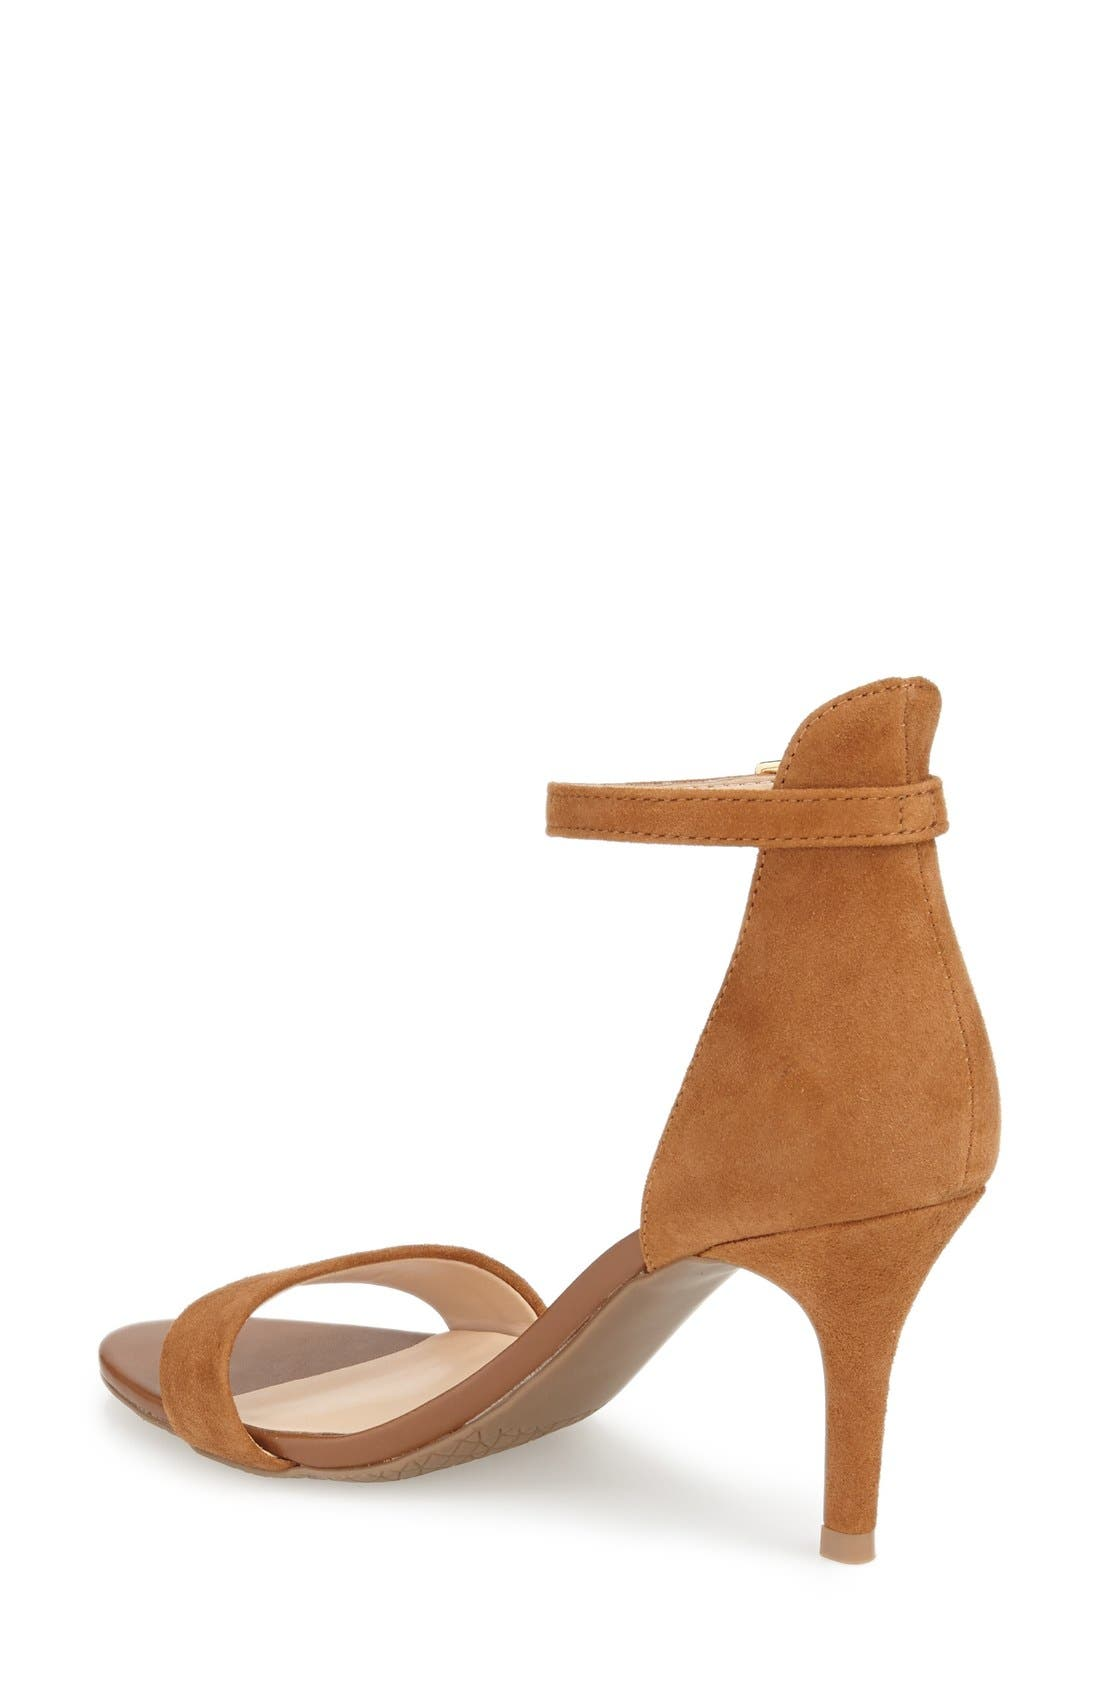 'Luminate' Open Toe Dress Sandal,                             Alternate thumbnail 75, color,